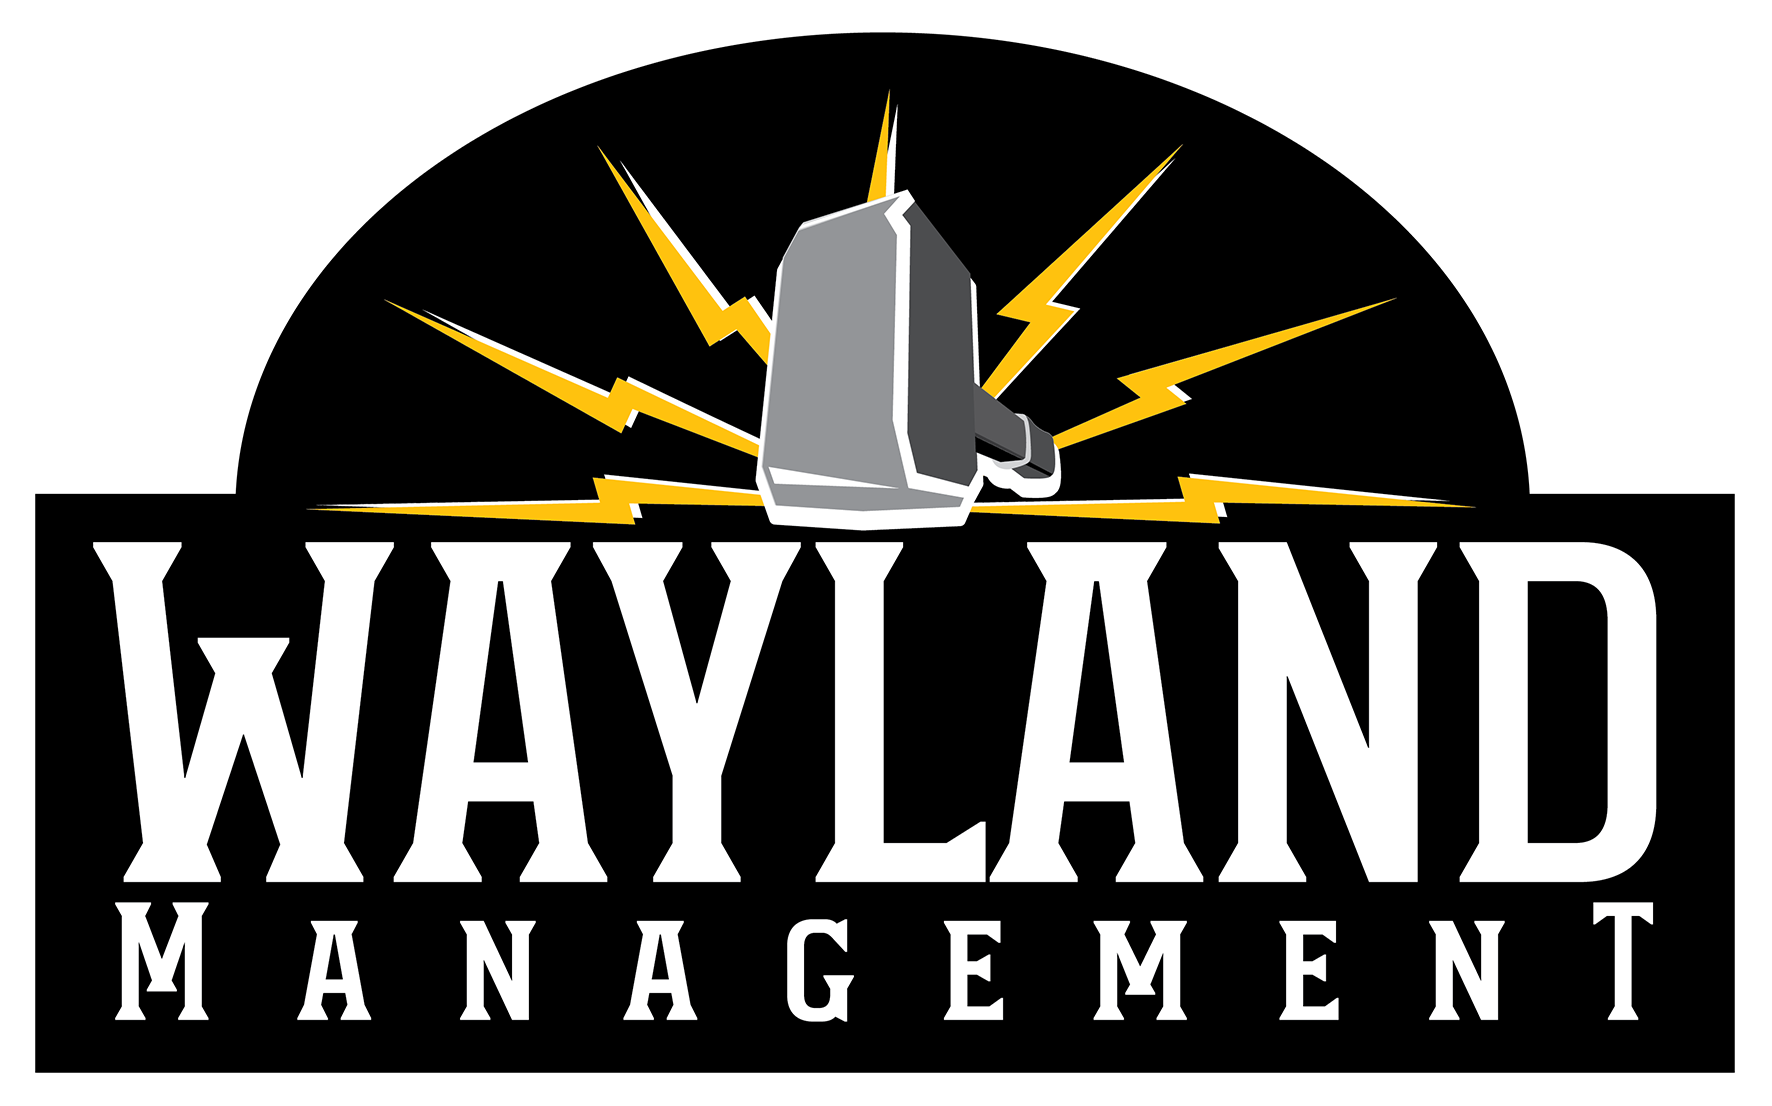 Wayland Management